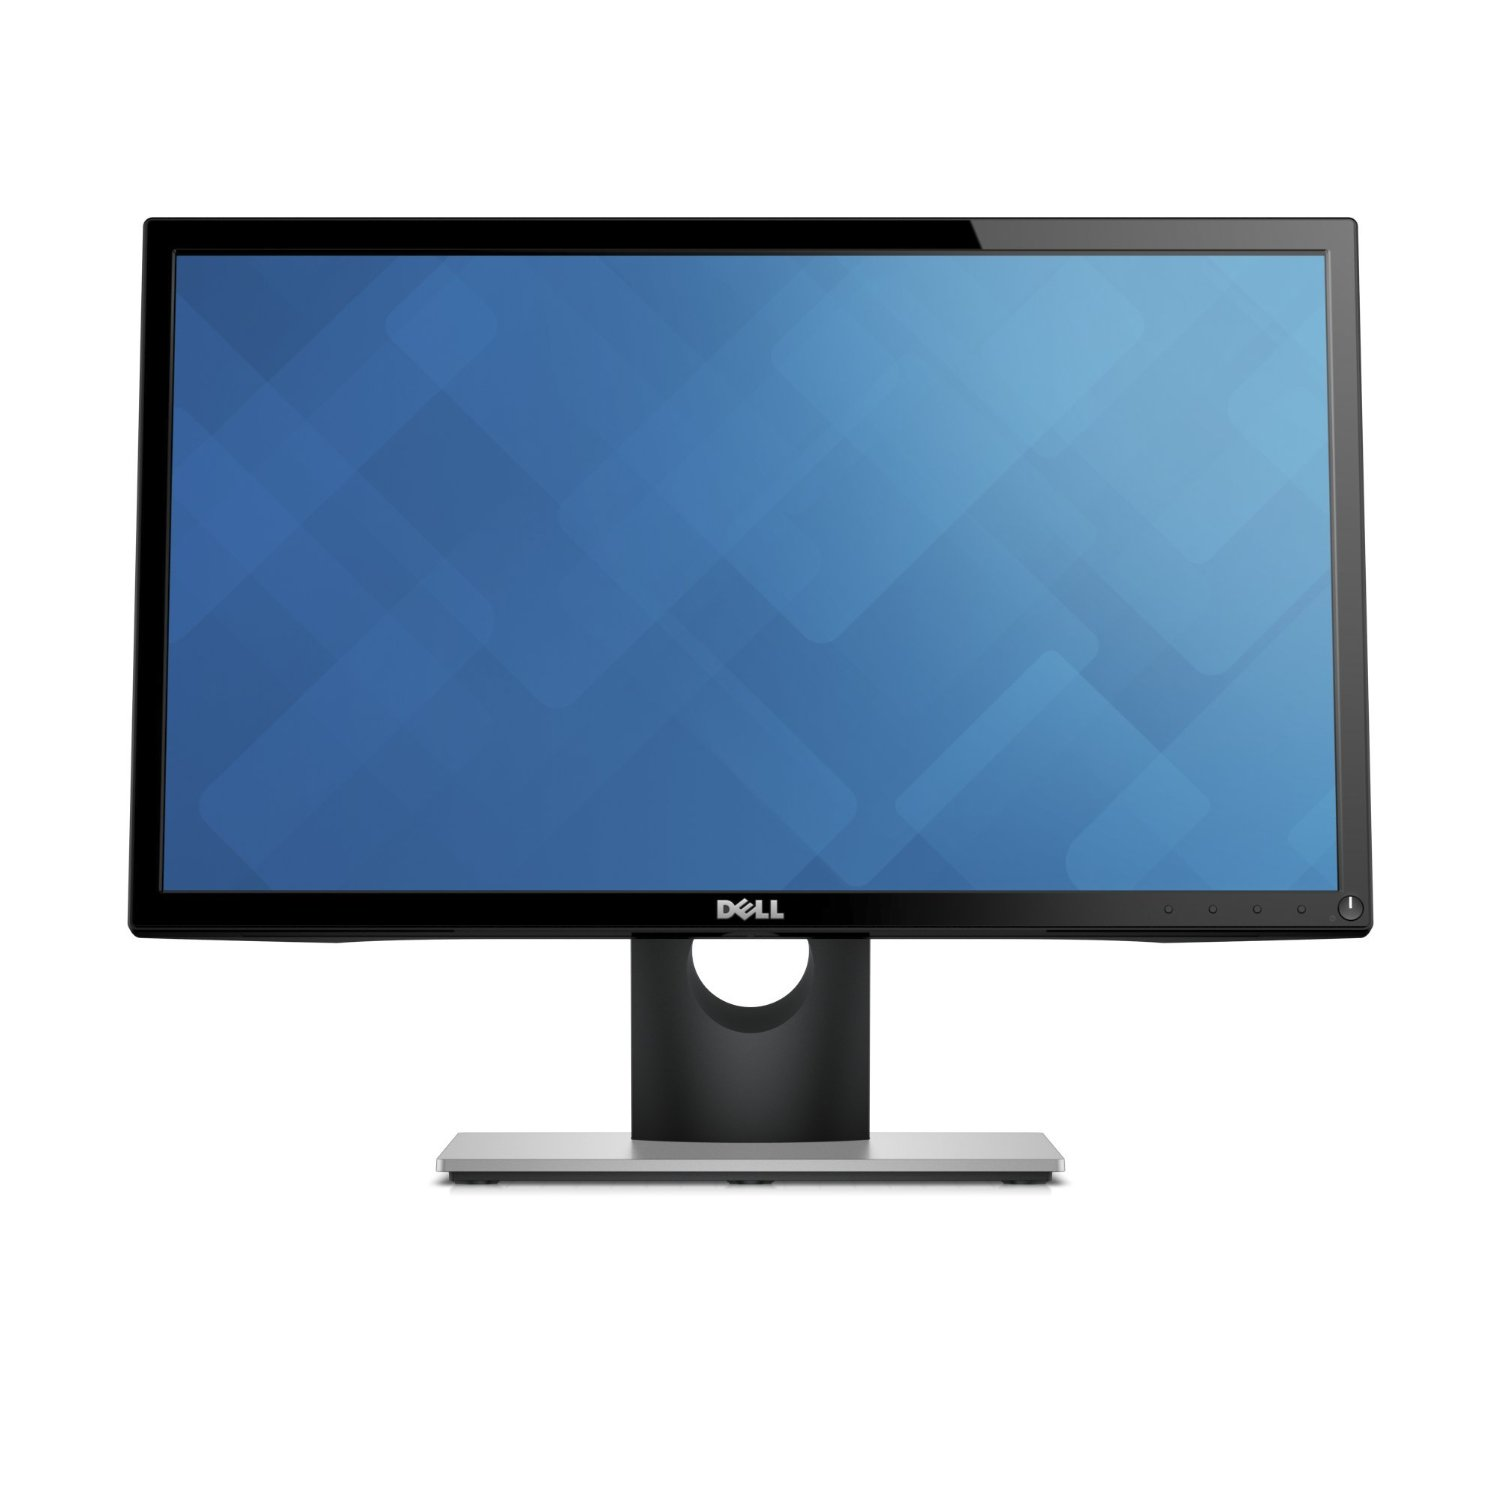 BENQ GW2270H 21.5inch monitor BLACK monitors